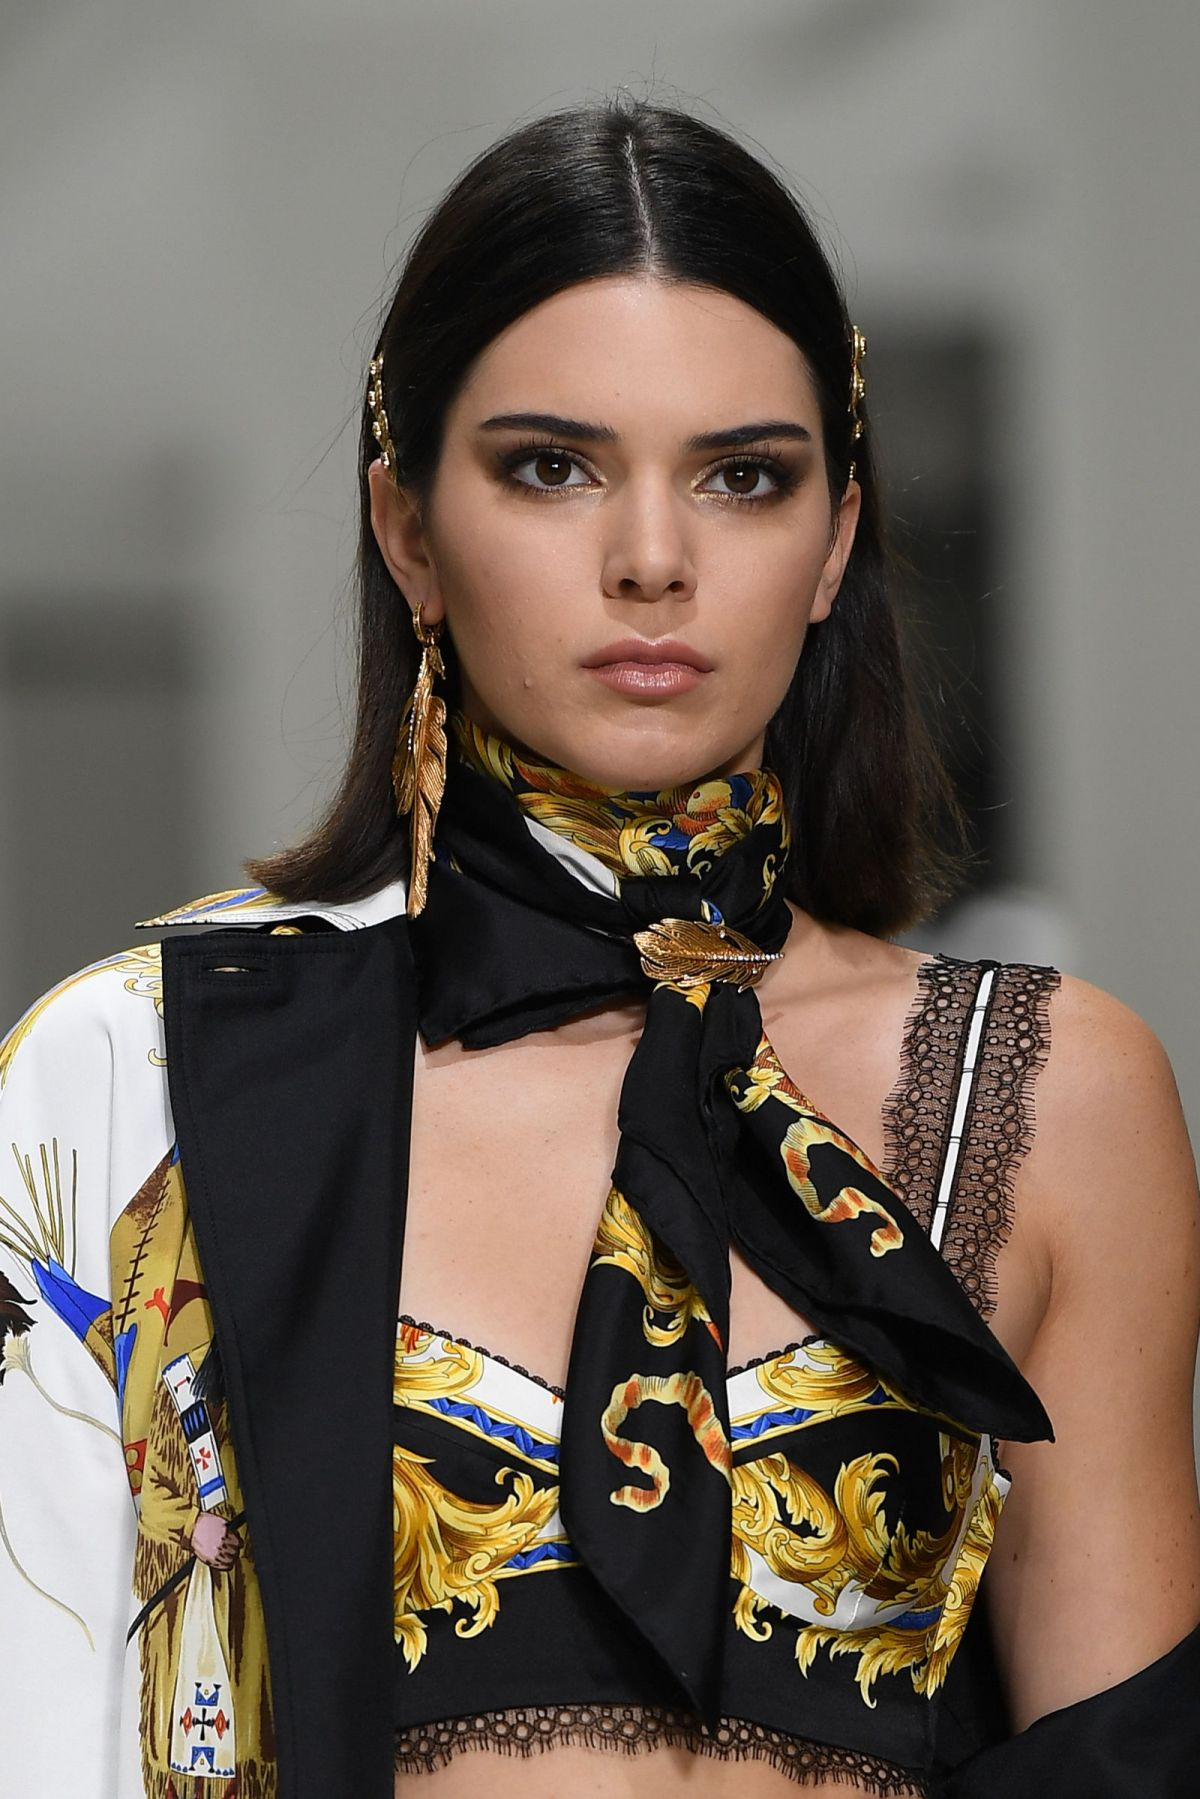 KENDALL JENNER at Versace Fashion Show at Milan 09/22/2017